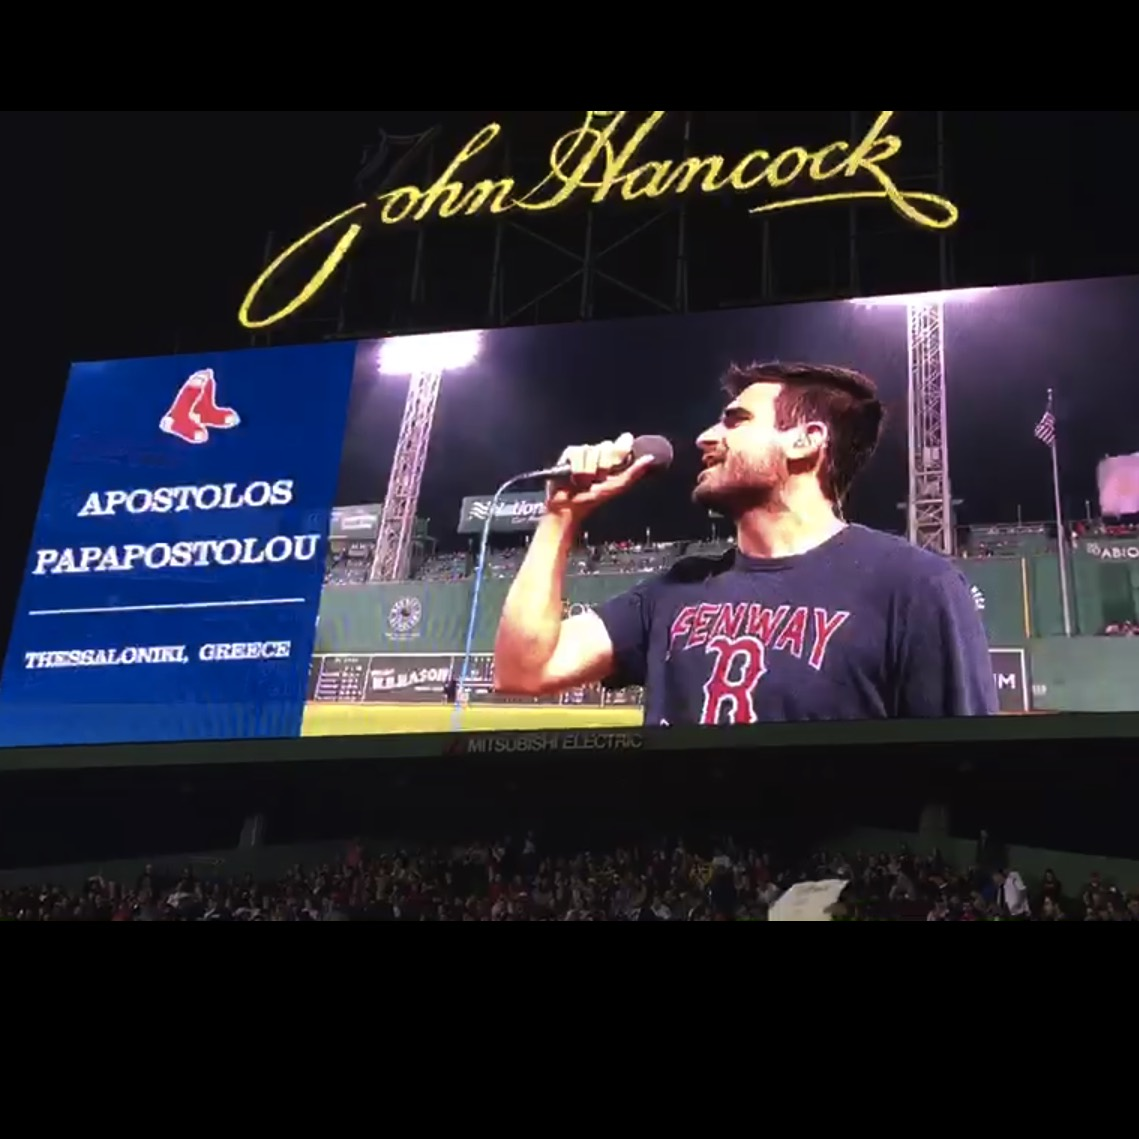 Fenway Stadium Performance